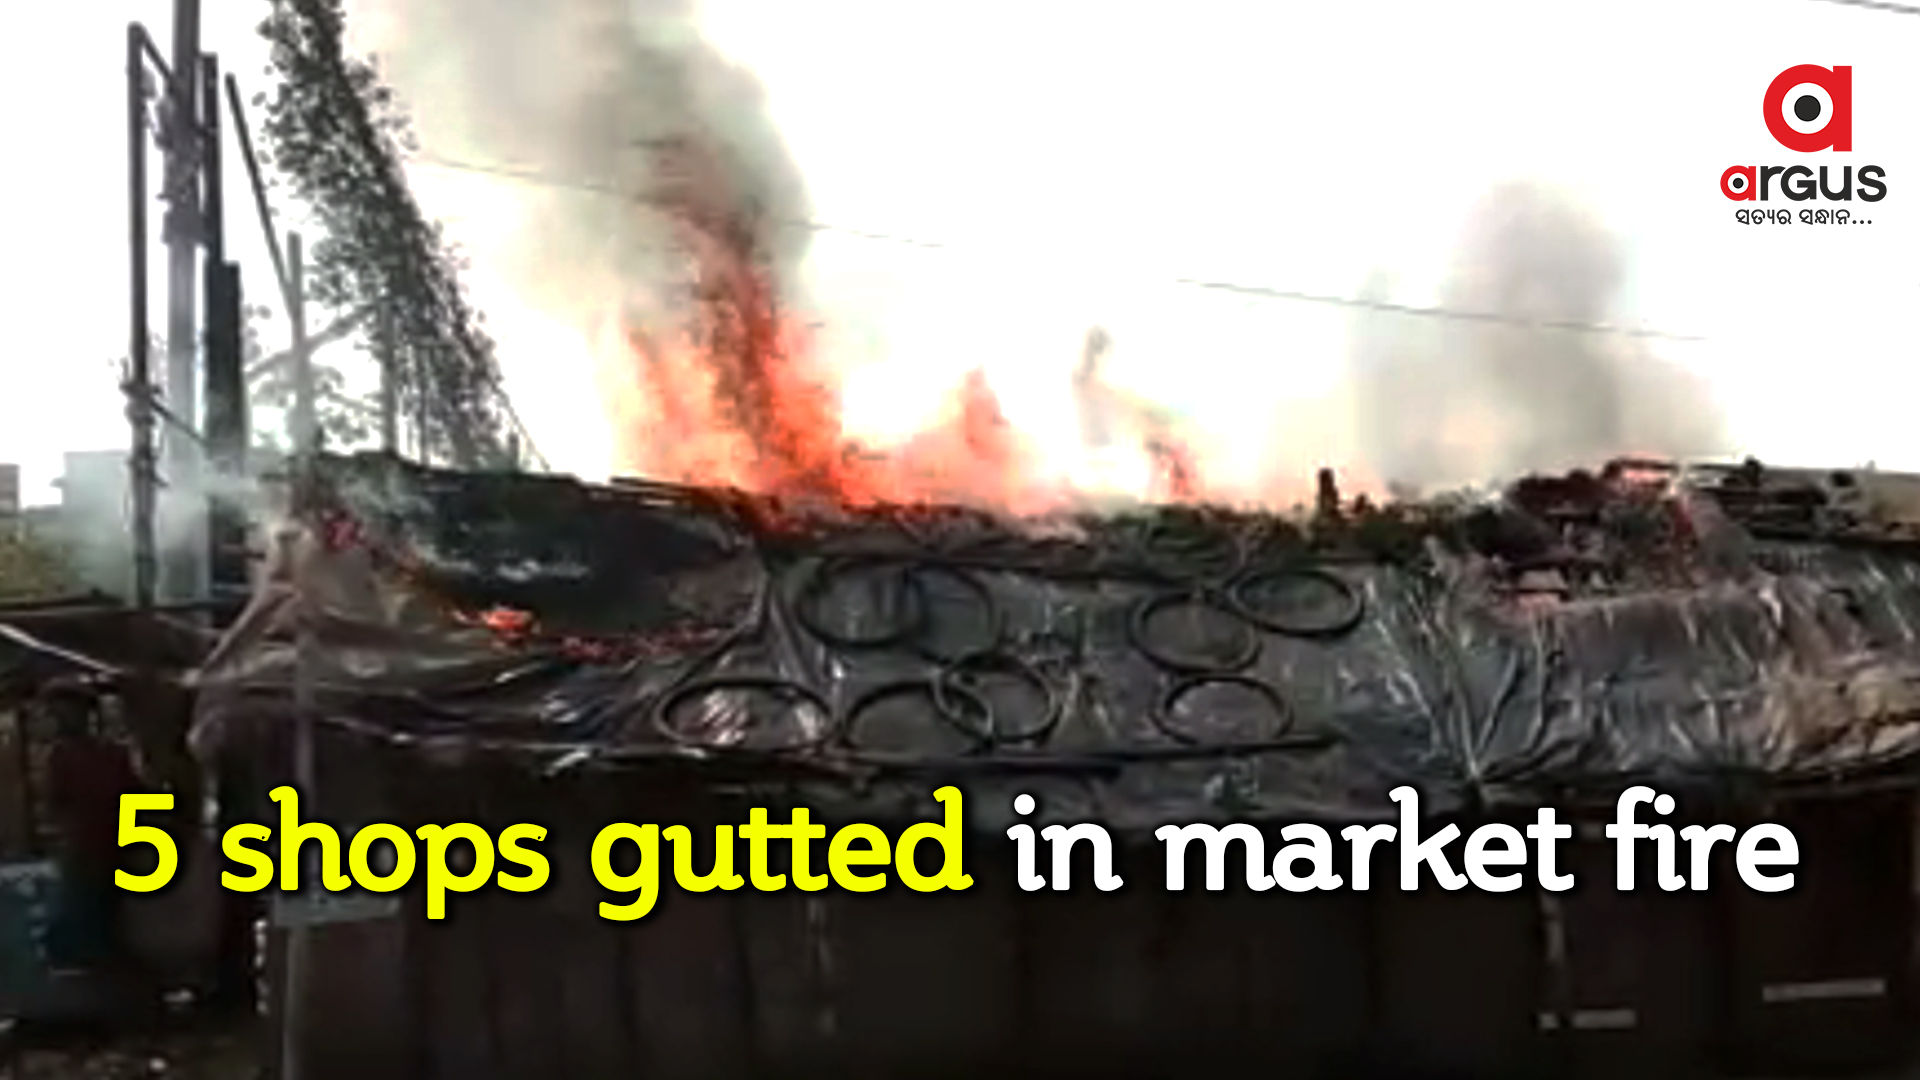 5 shops gutted, goods worth lakhs lost in market fire in Cuttack